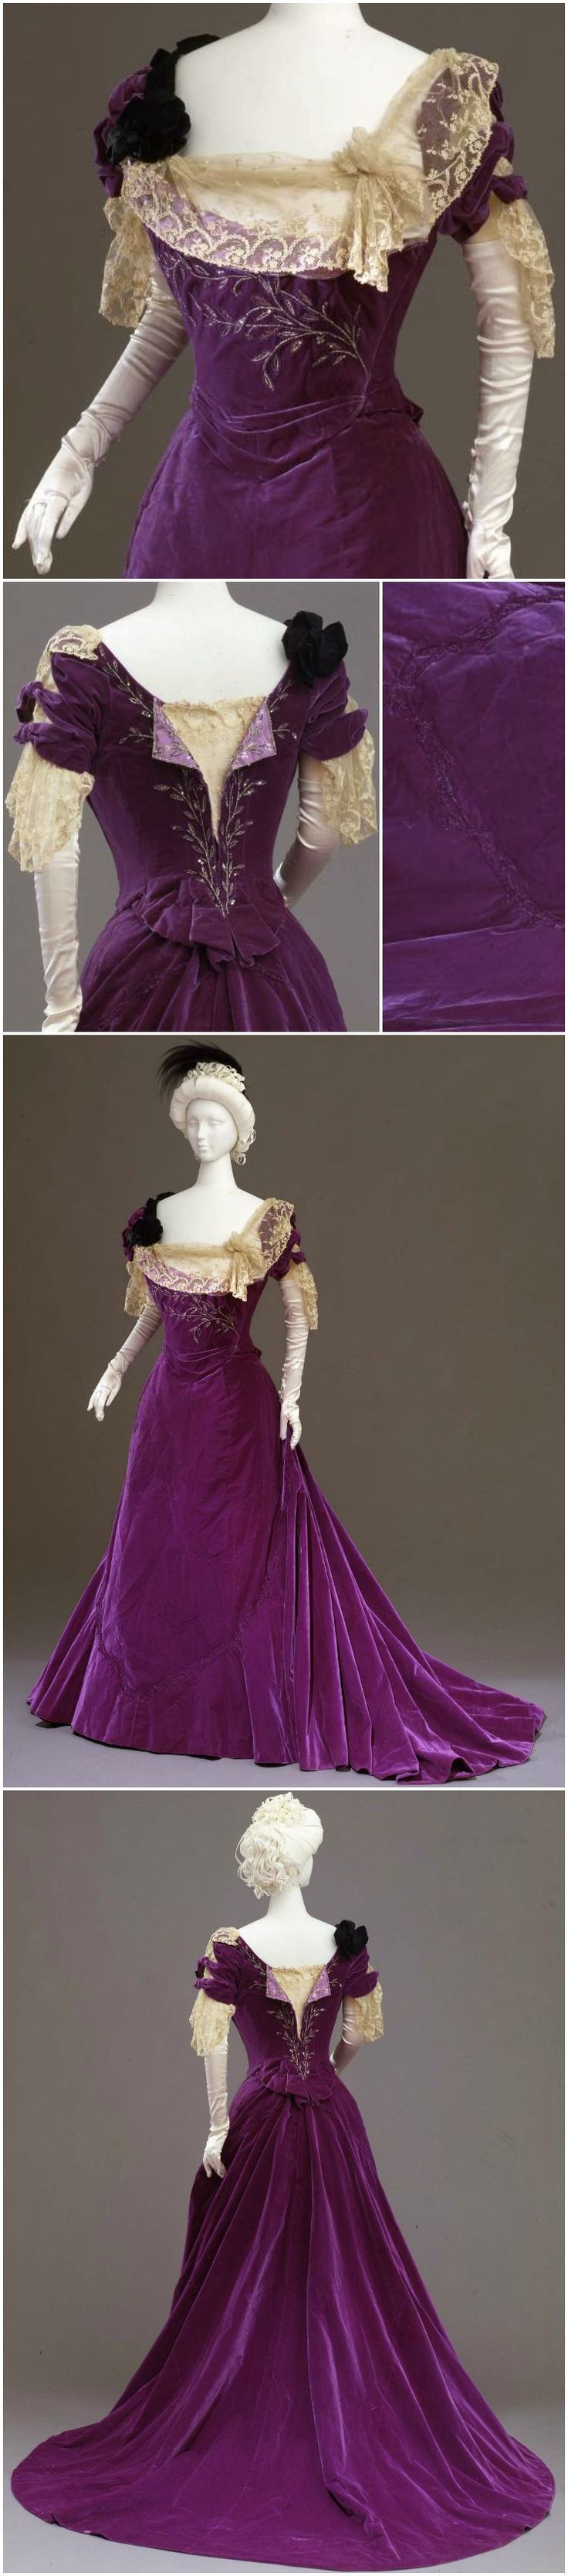 Purple velvet dress in two parts (bodice and skirt), by Atelier Worth, Paris, circa 1901, at the Pitti Palace Costume Gallery.